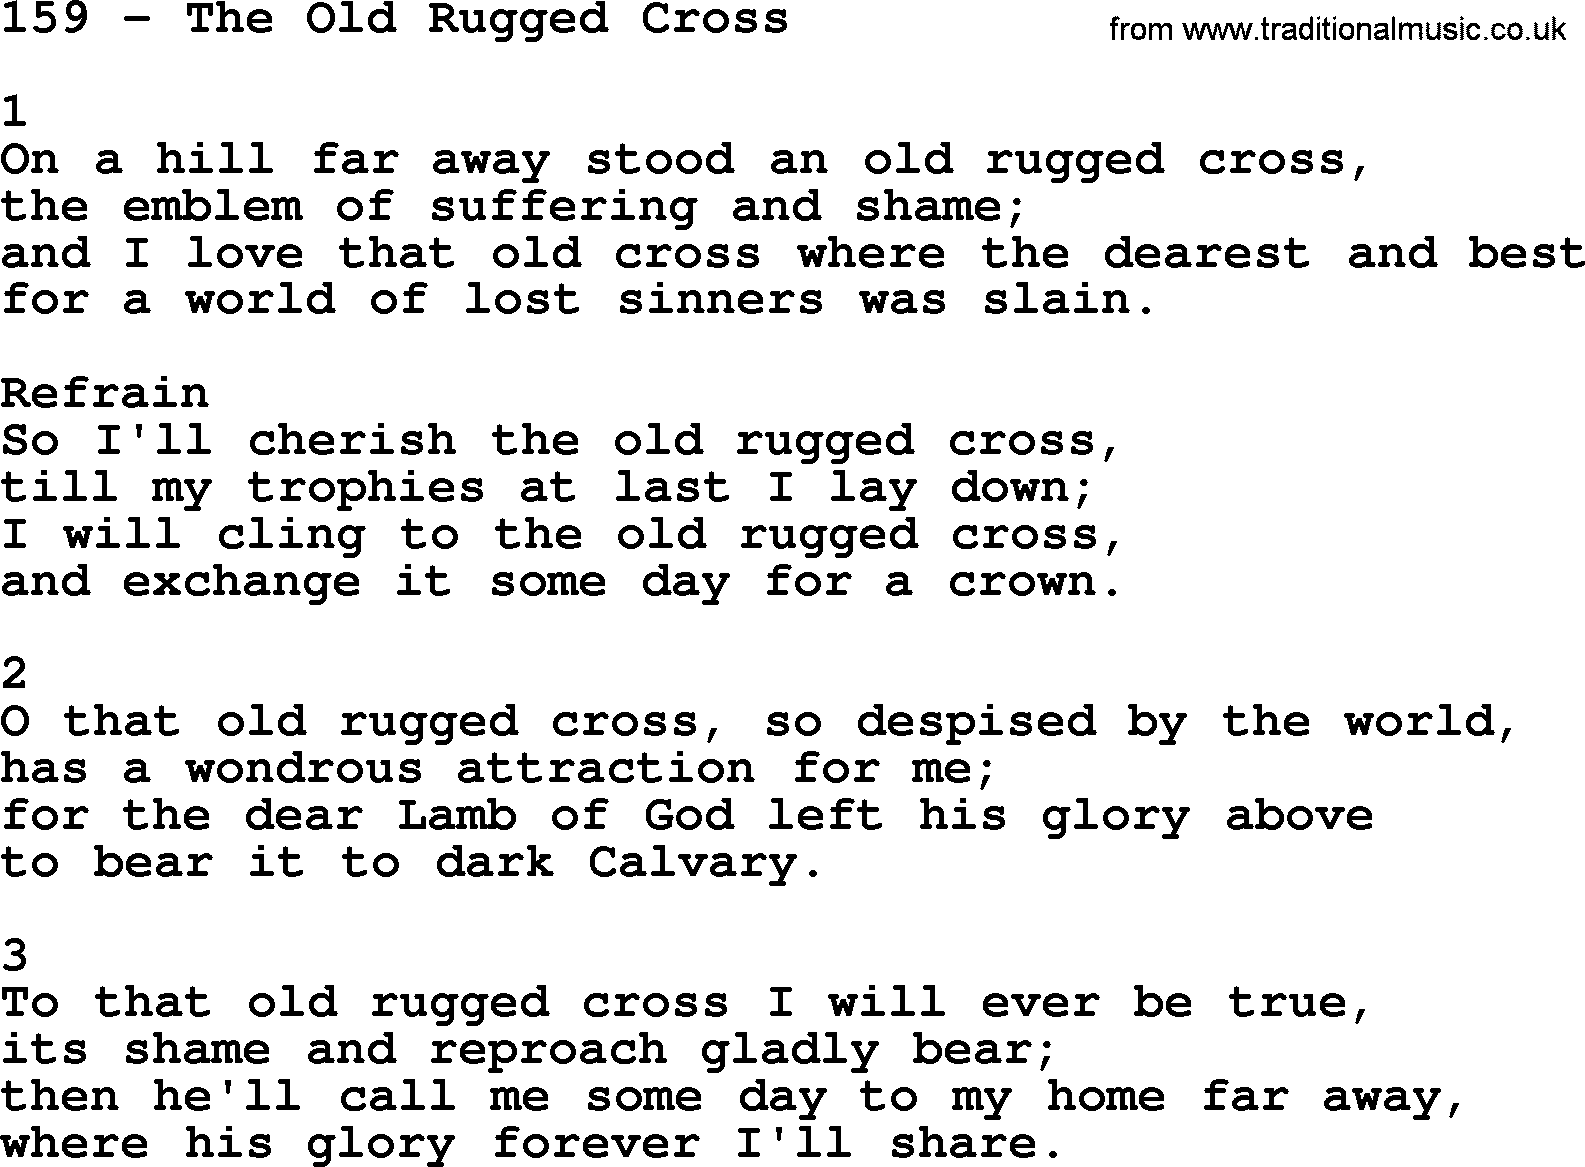 Complete Adventis Hymnal, Title: 159 The Old Rugged Cross, With Lyrics,